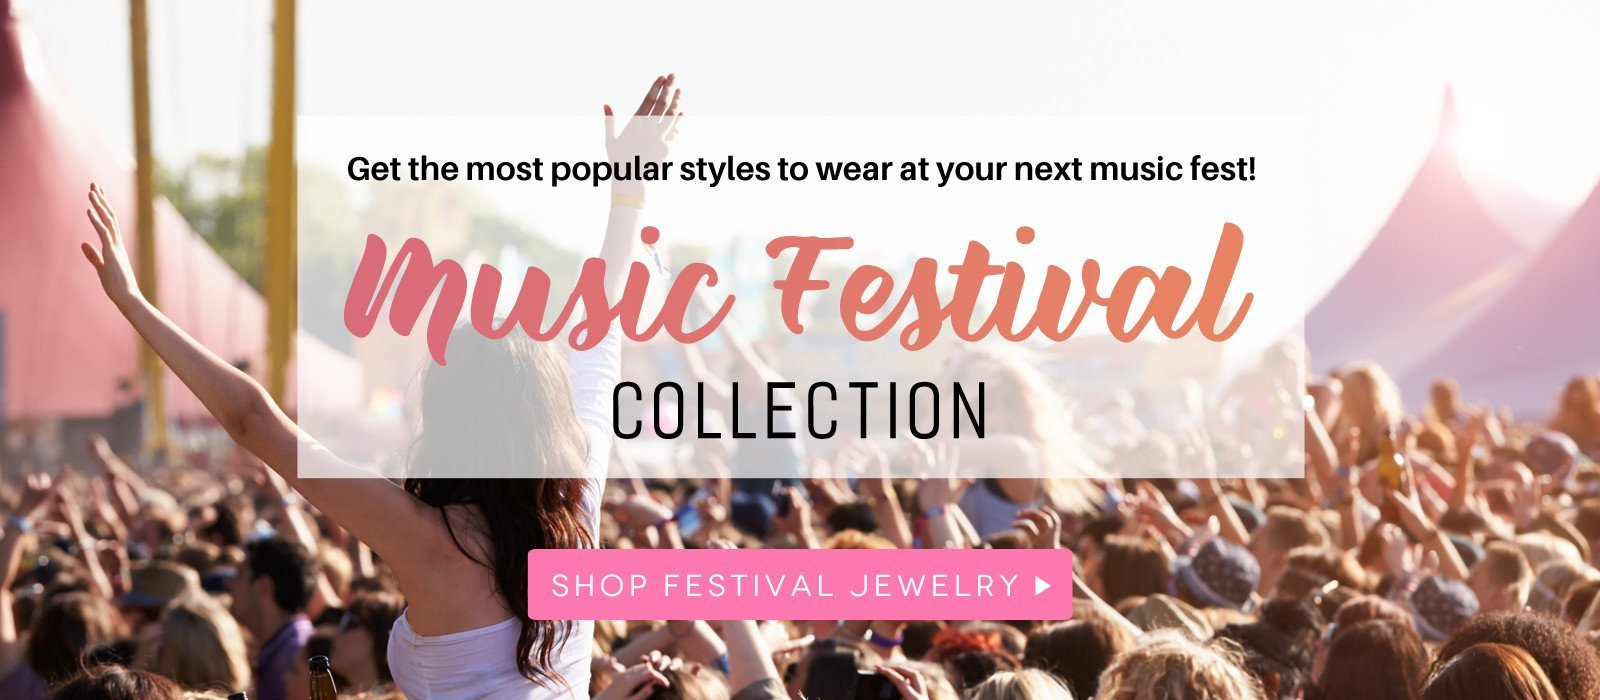 Shop the best jewelry styles for your next music festival or concerts with our new Music Festival Jewelry collection from Cate and Chloe.